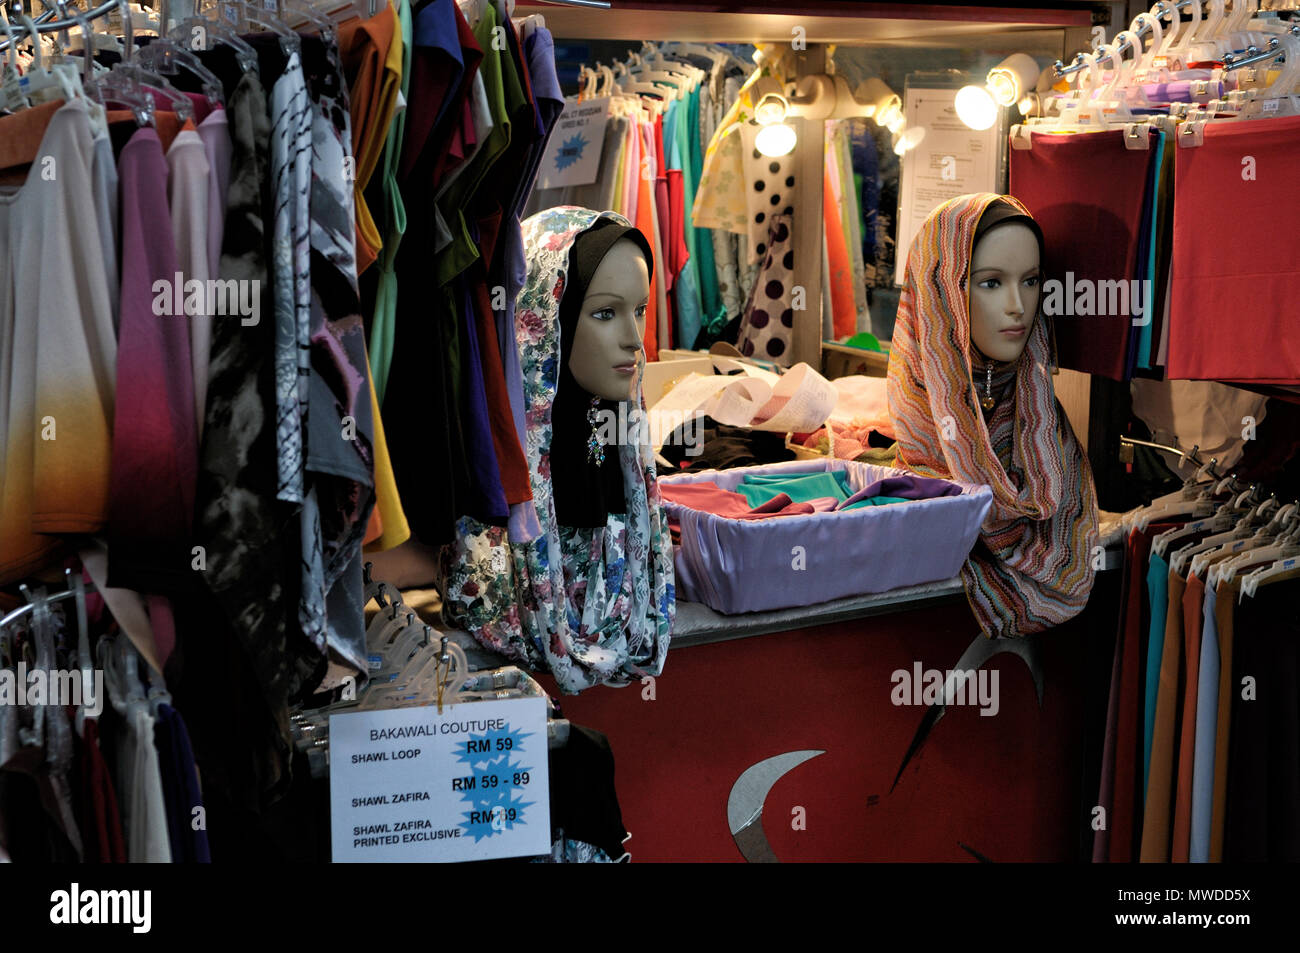 Dummies with Islamic veils in a store of Kuala Lumpur, Malaysia - Stock Image